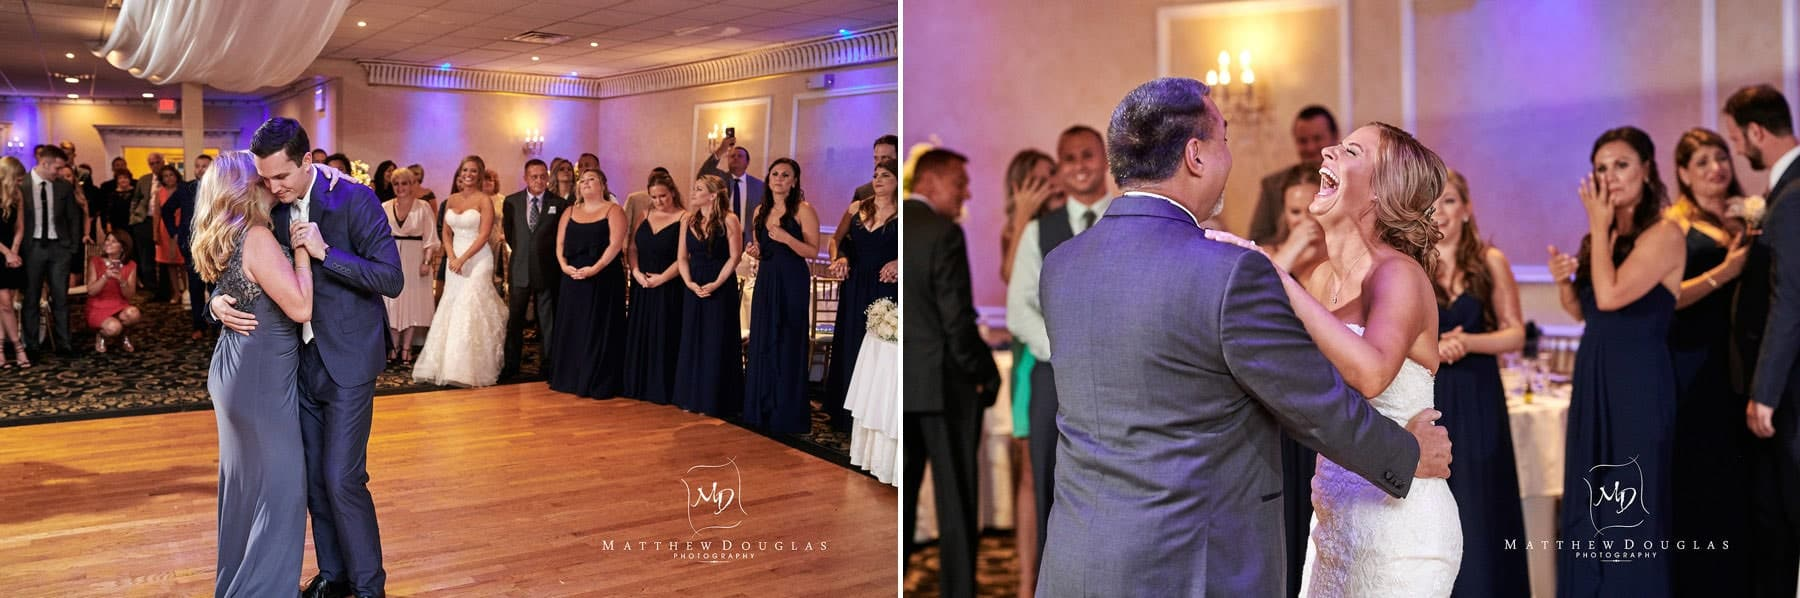 Chandelier Flanders Valley Wedding parent dance photos